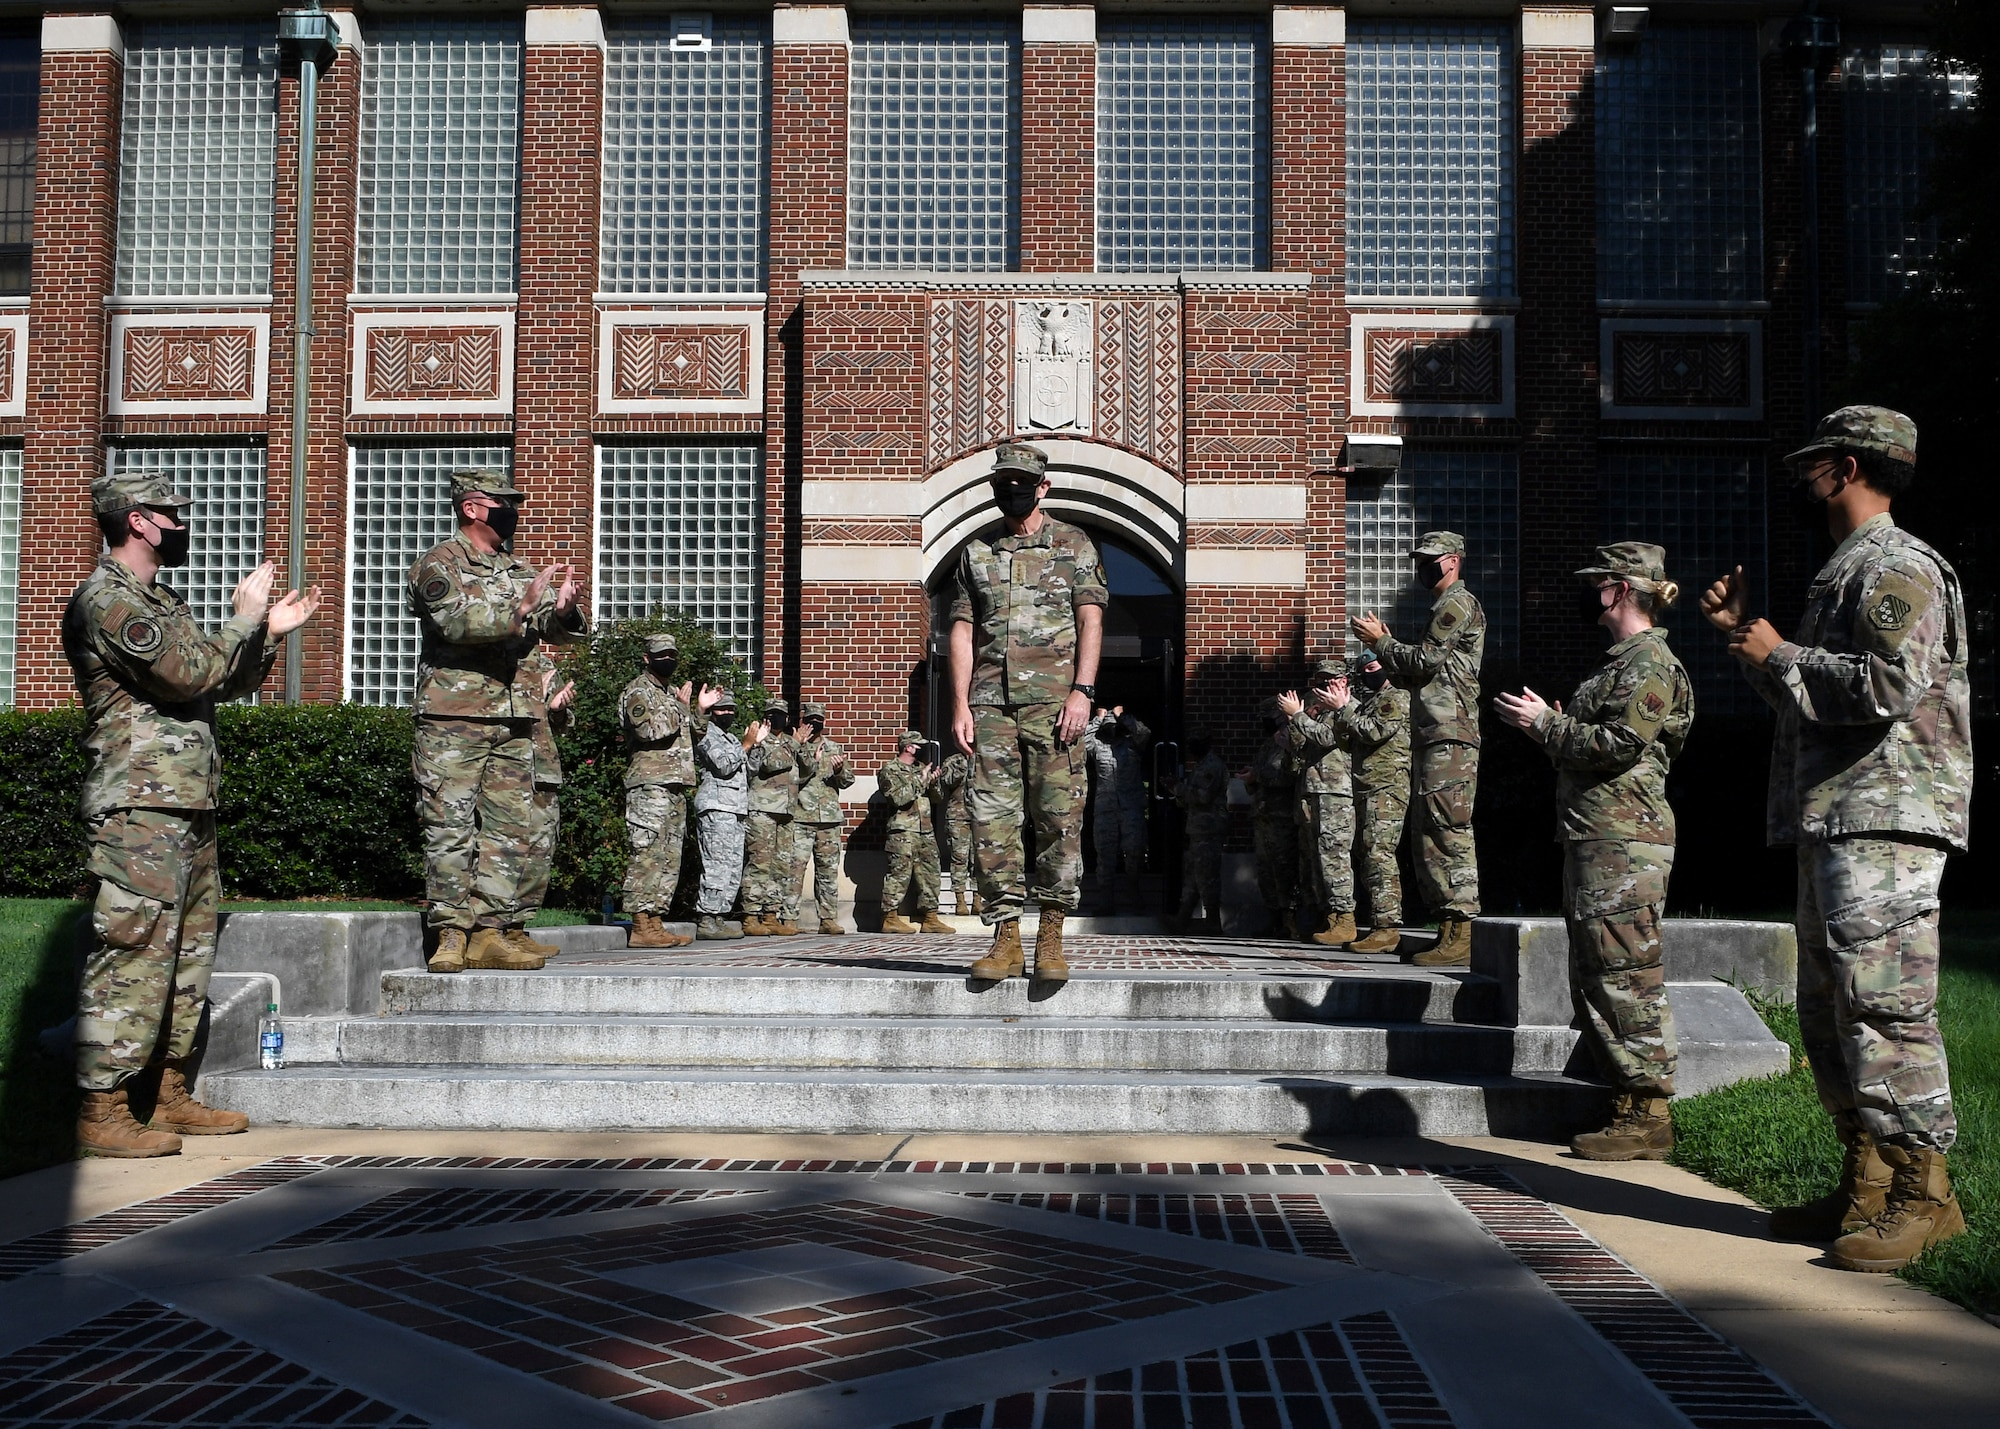 General Holmes is greeted by Airmen at the door